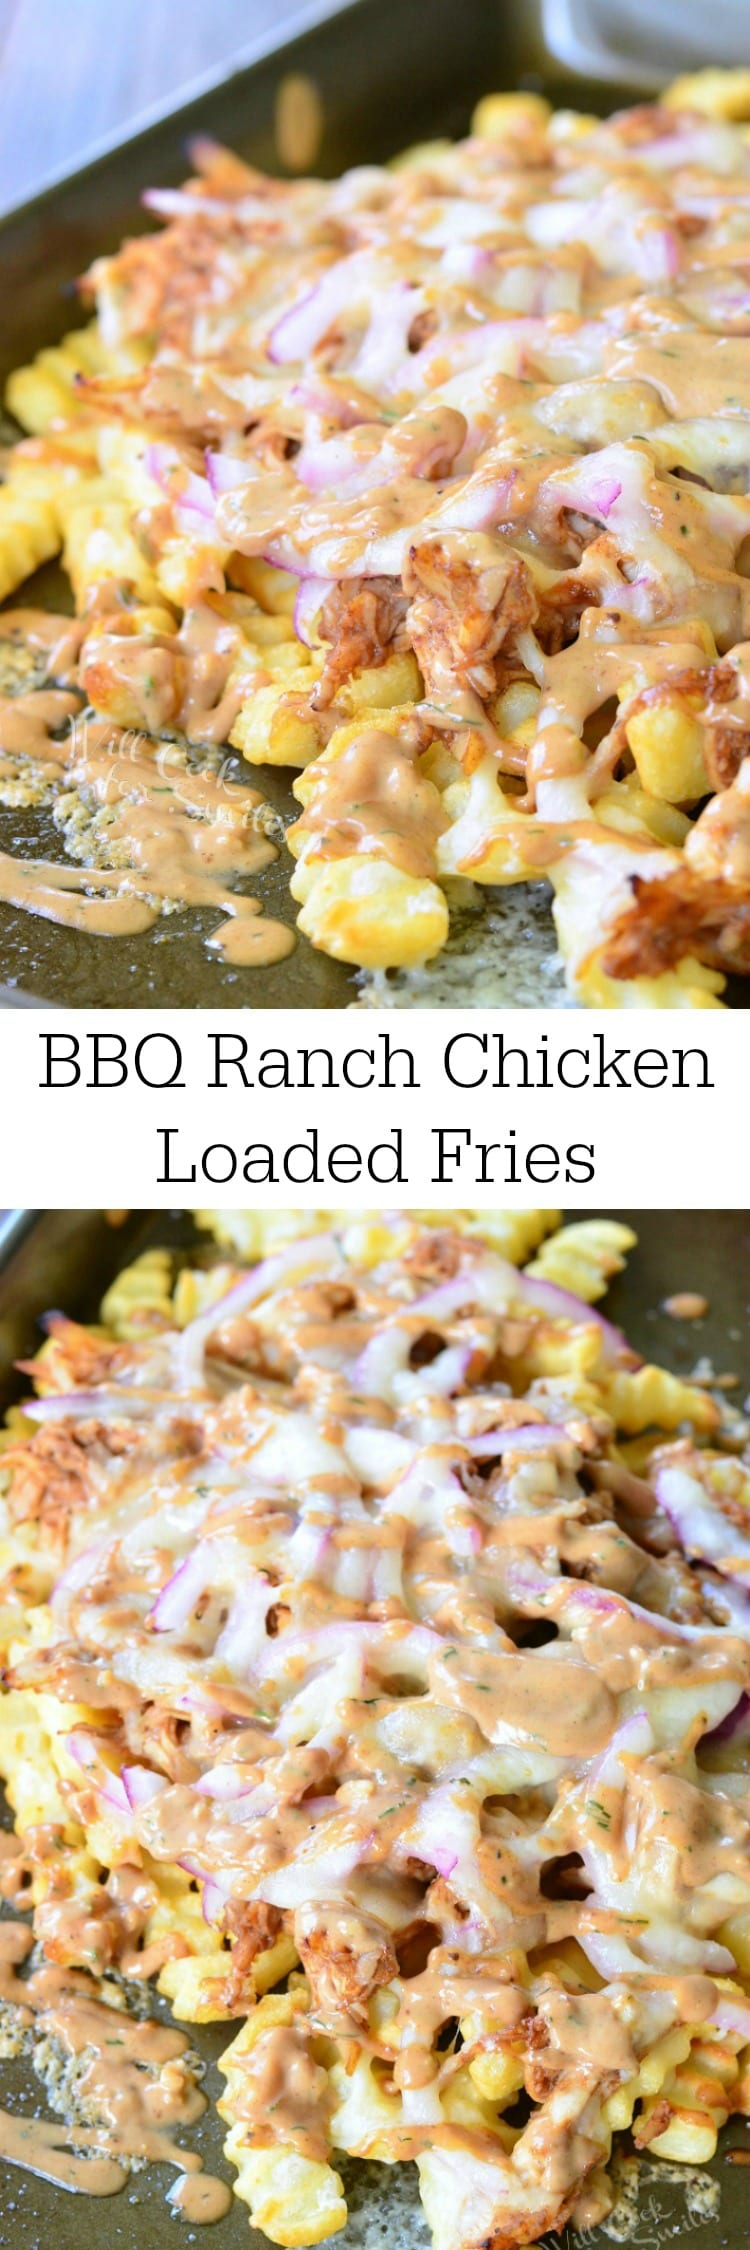 BBQ Ranch Chicken Loaded Fries with chicken, cheese, and red onions on a baking dish collage